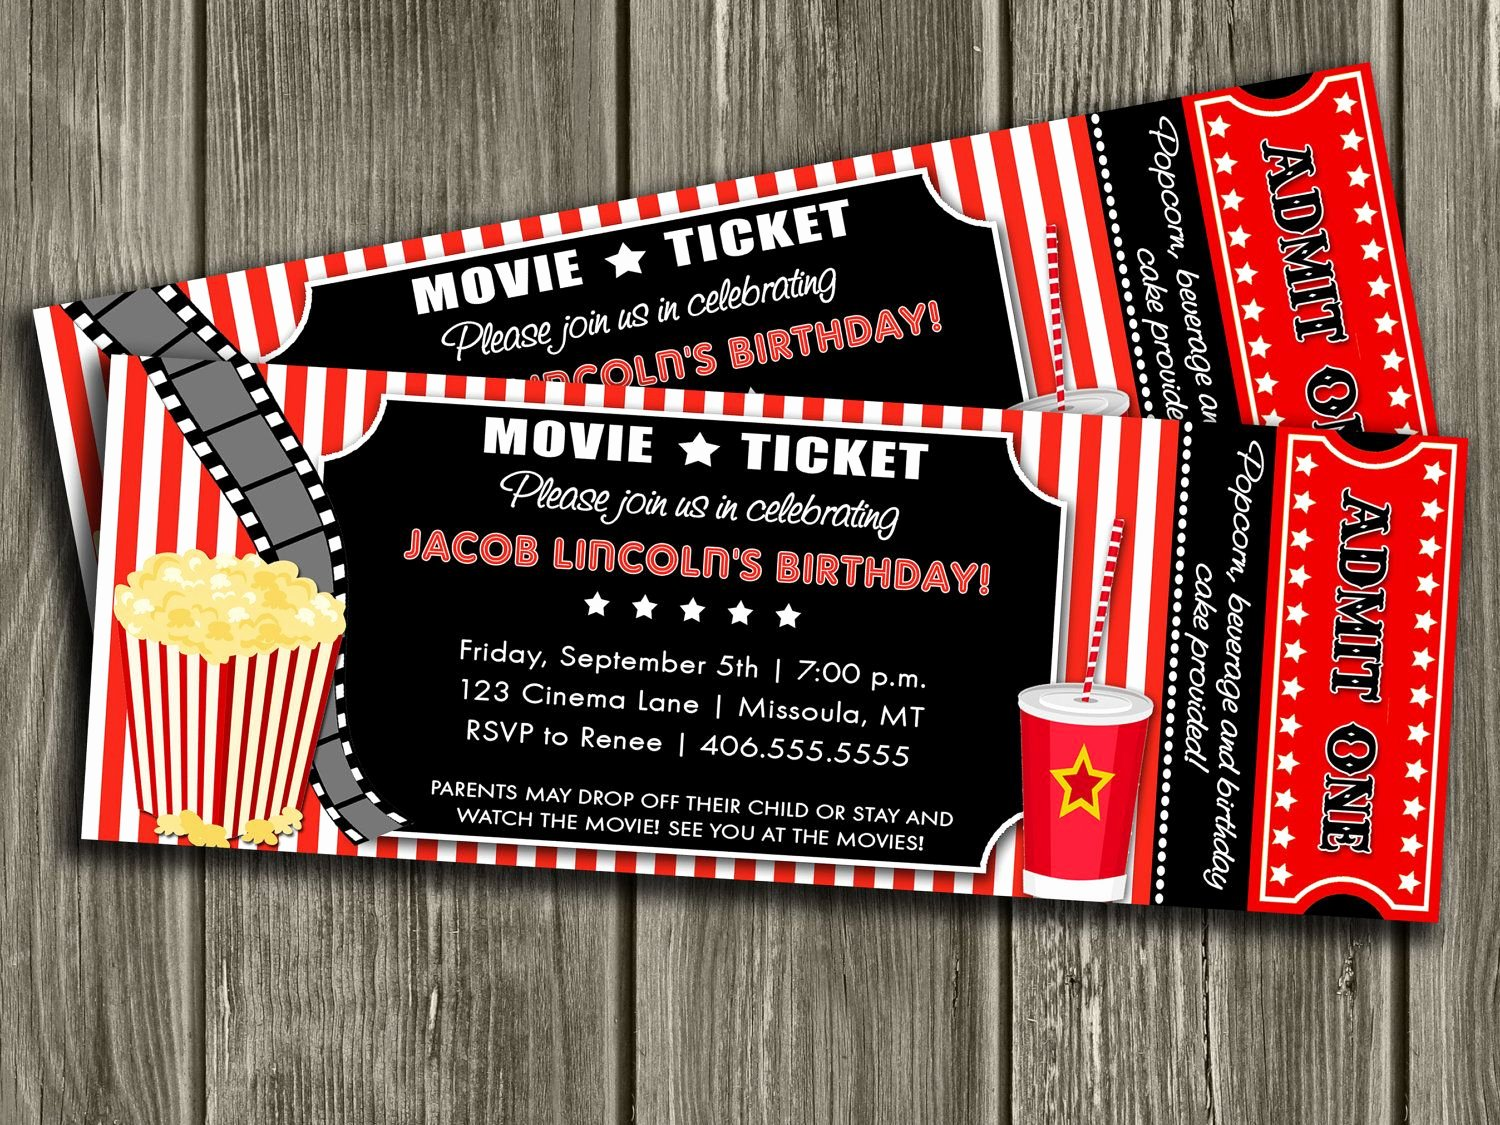 Movie Ticket Invitation Template Luxury Movie Ticket Invitation Free Thank You Card Included